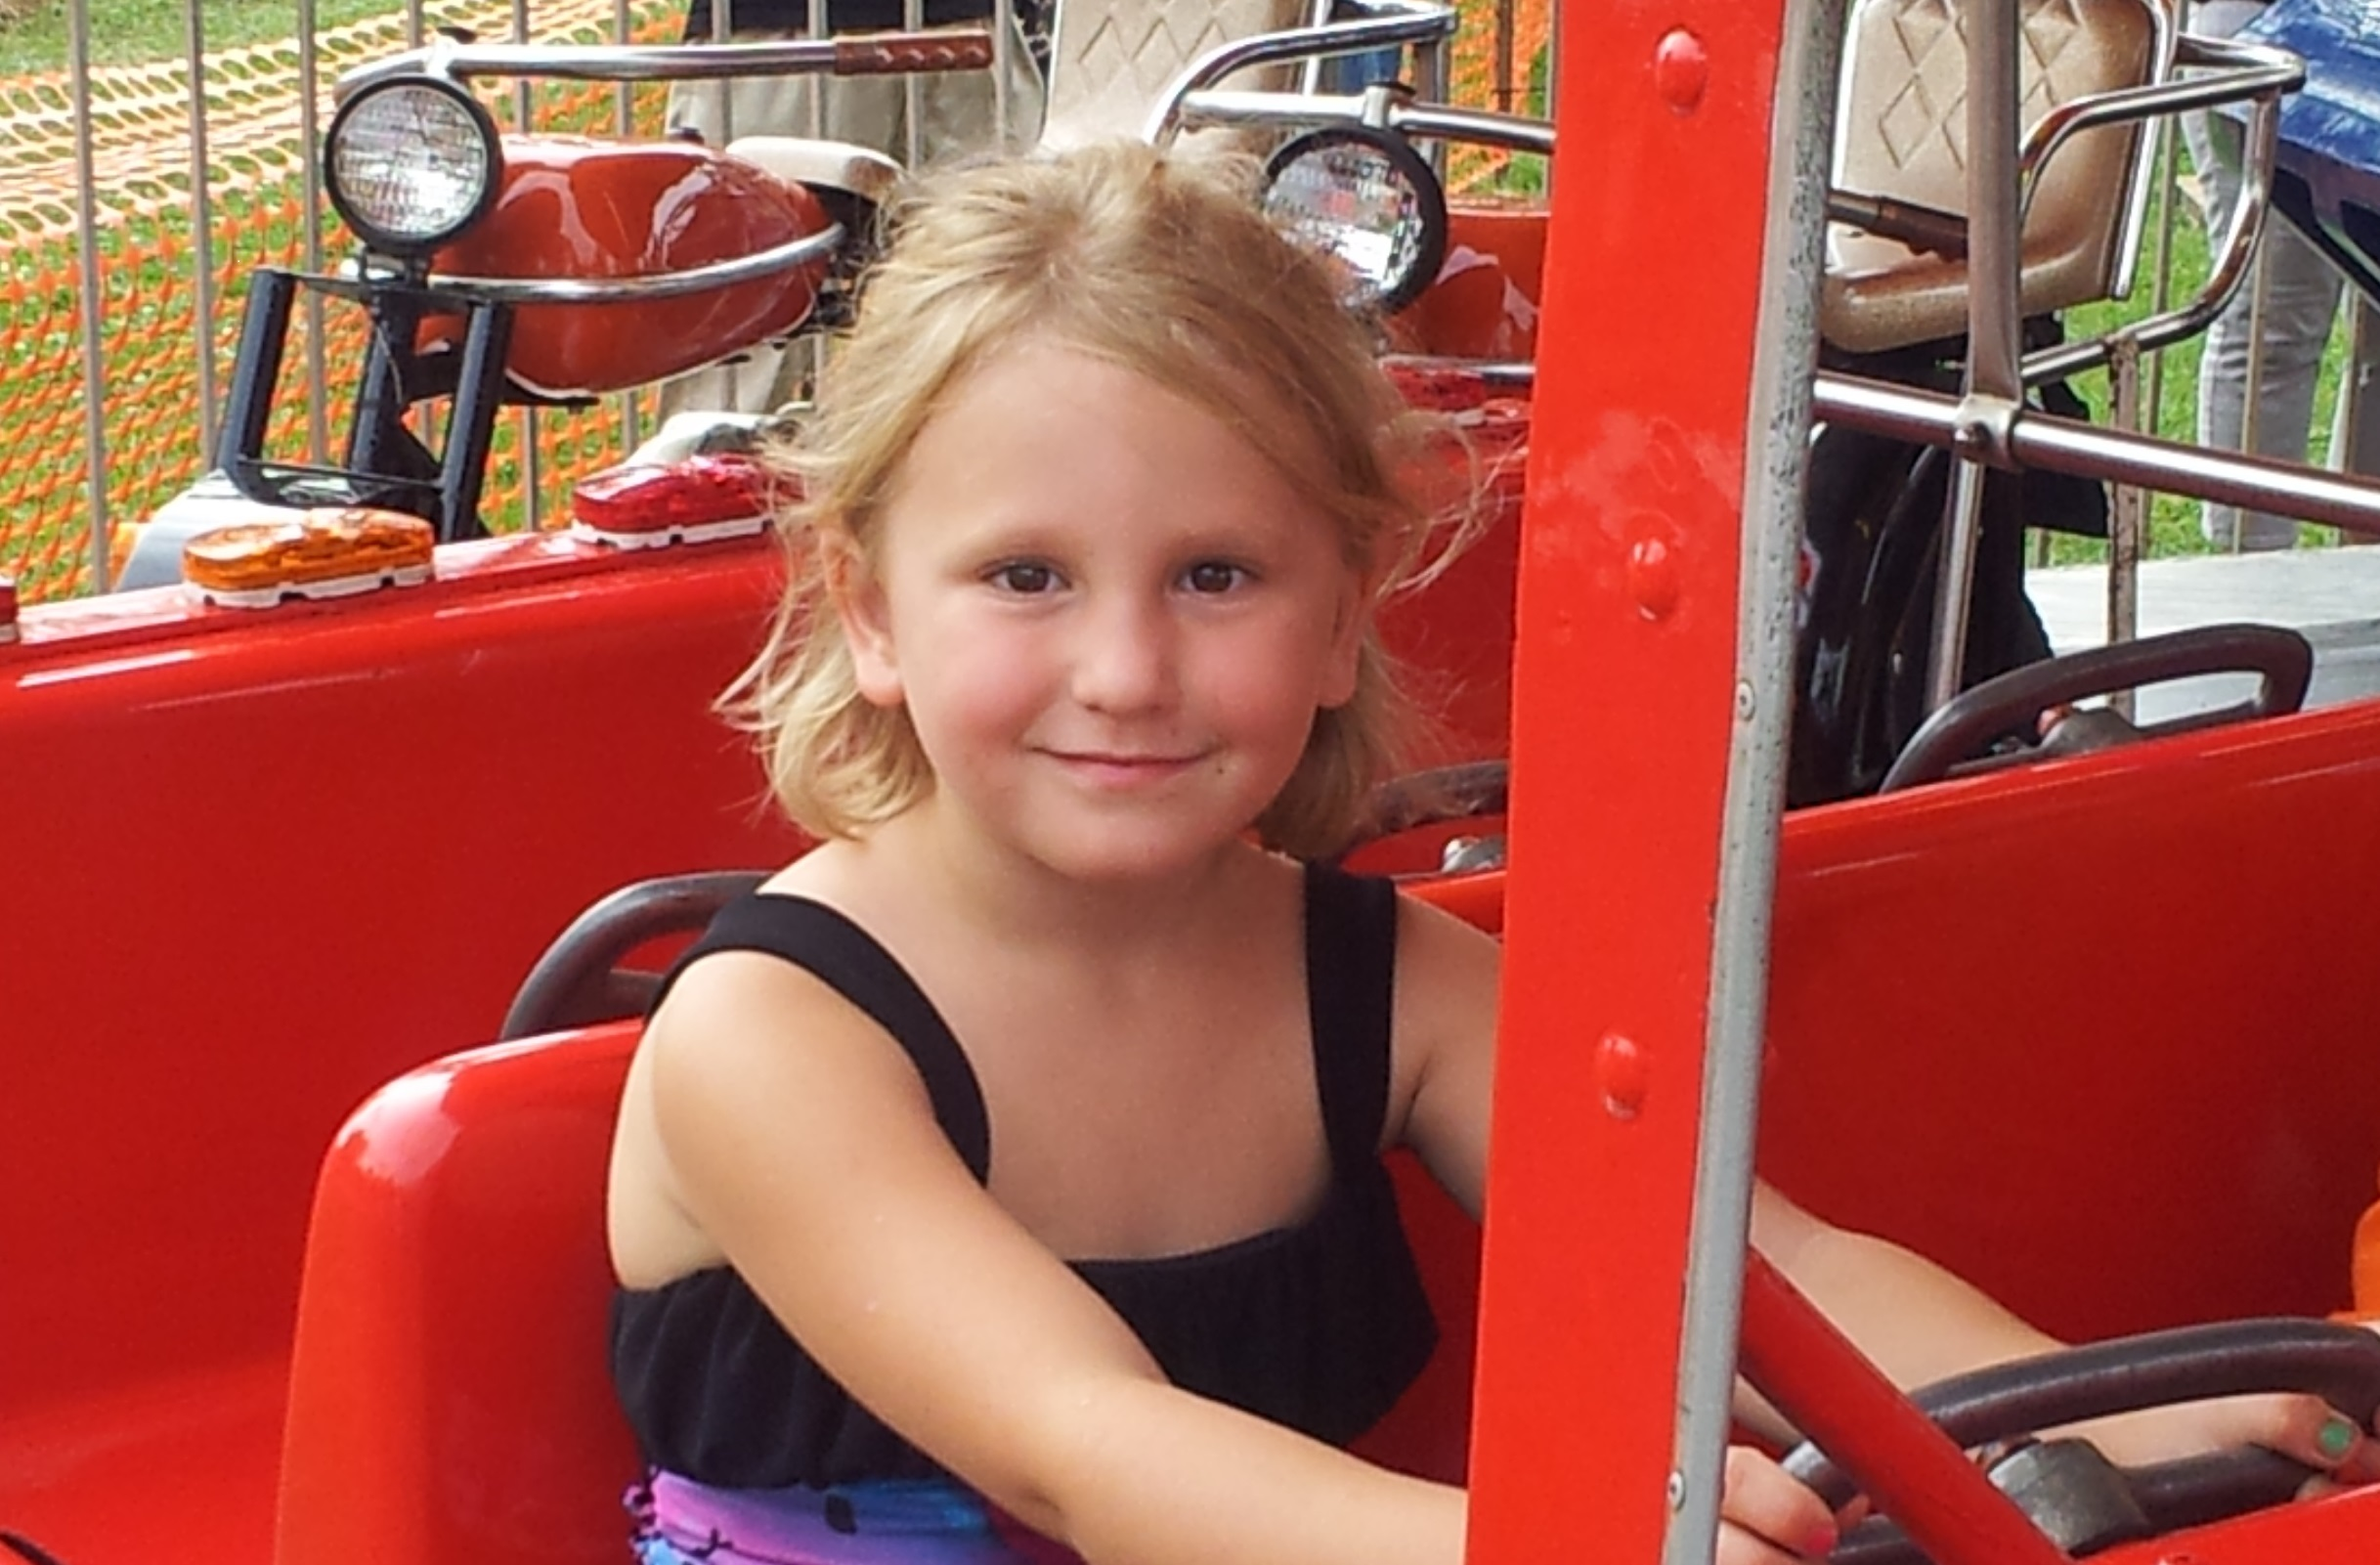 Photo of 5-year-old Alexis Stafford courtesy of Windsor Police Services.